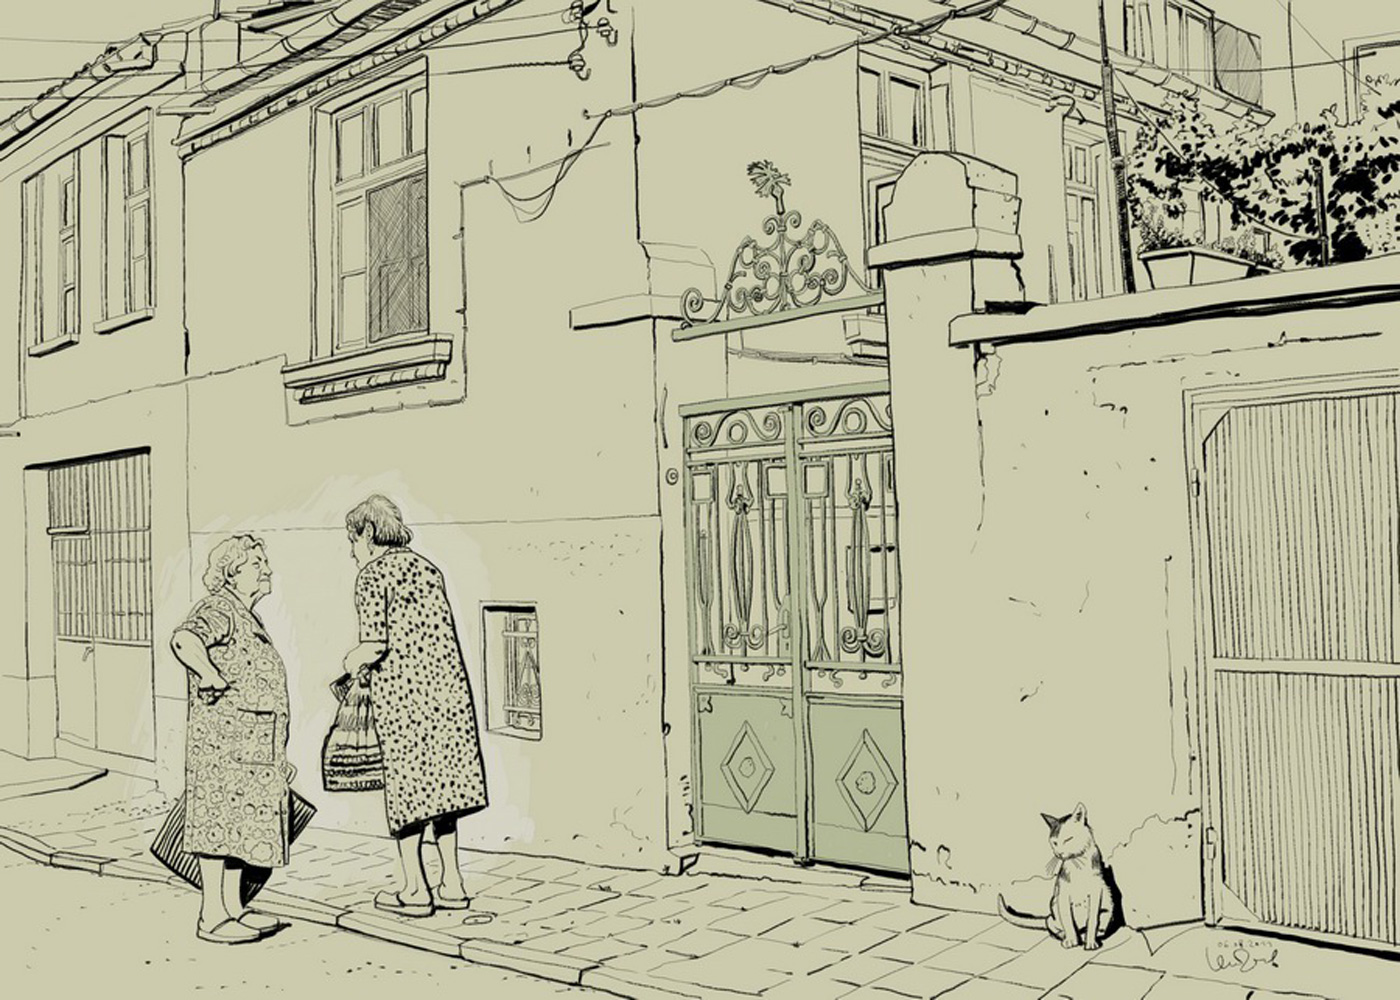 Comic Art Of Two Old Woman Talking On The Street In Front Of a Old House